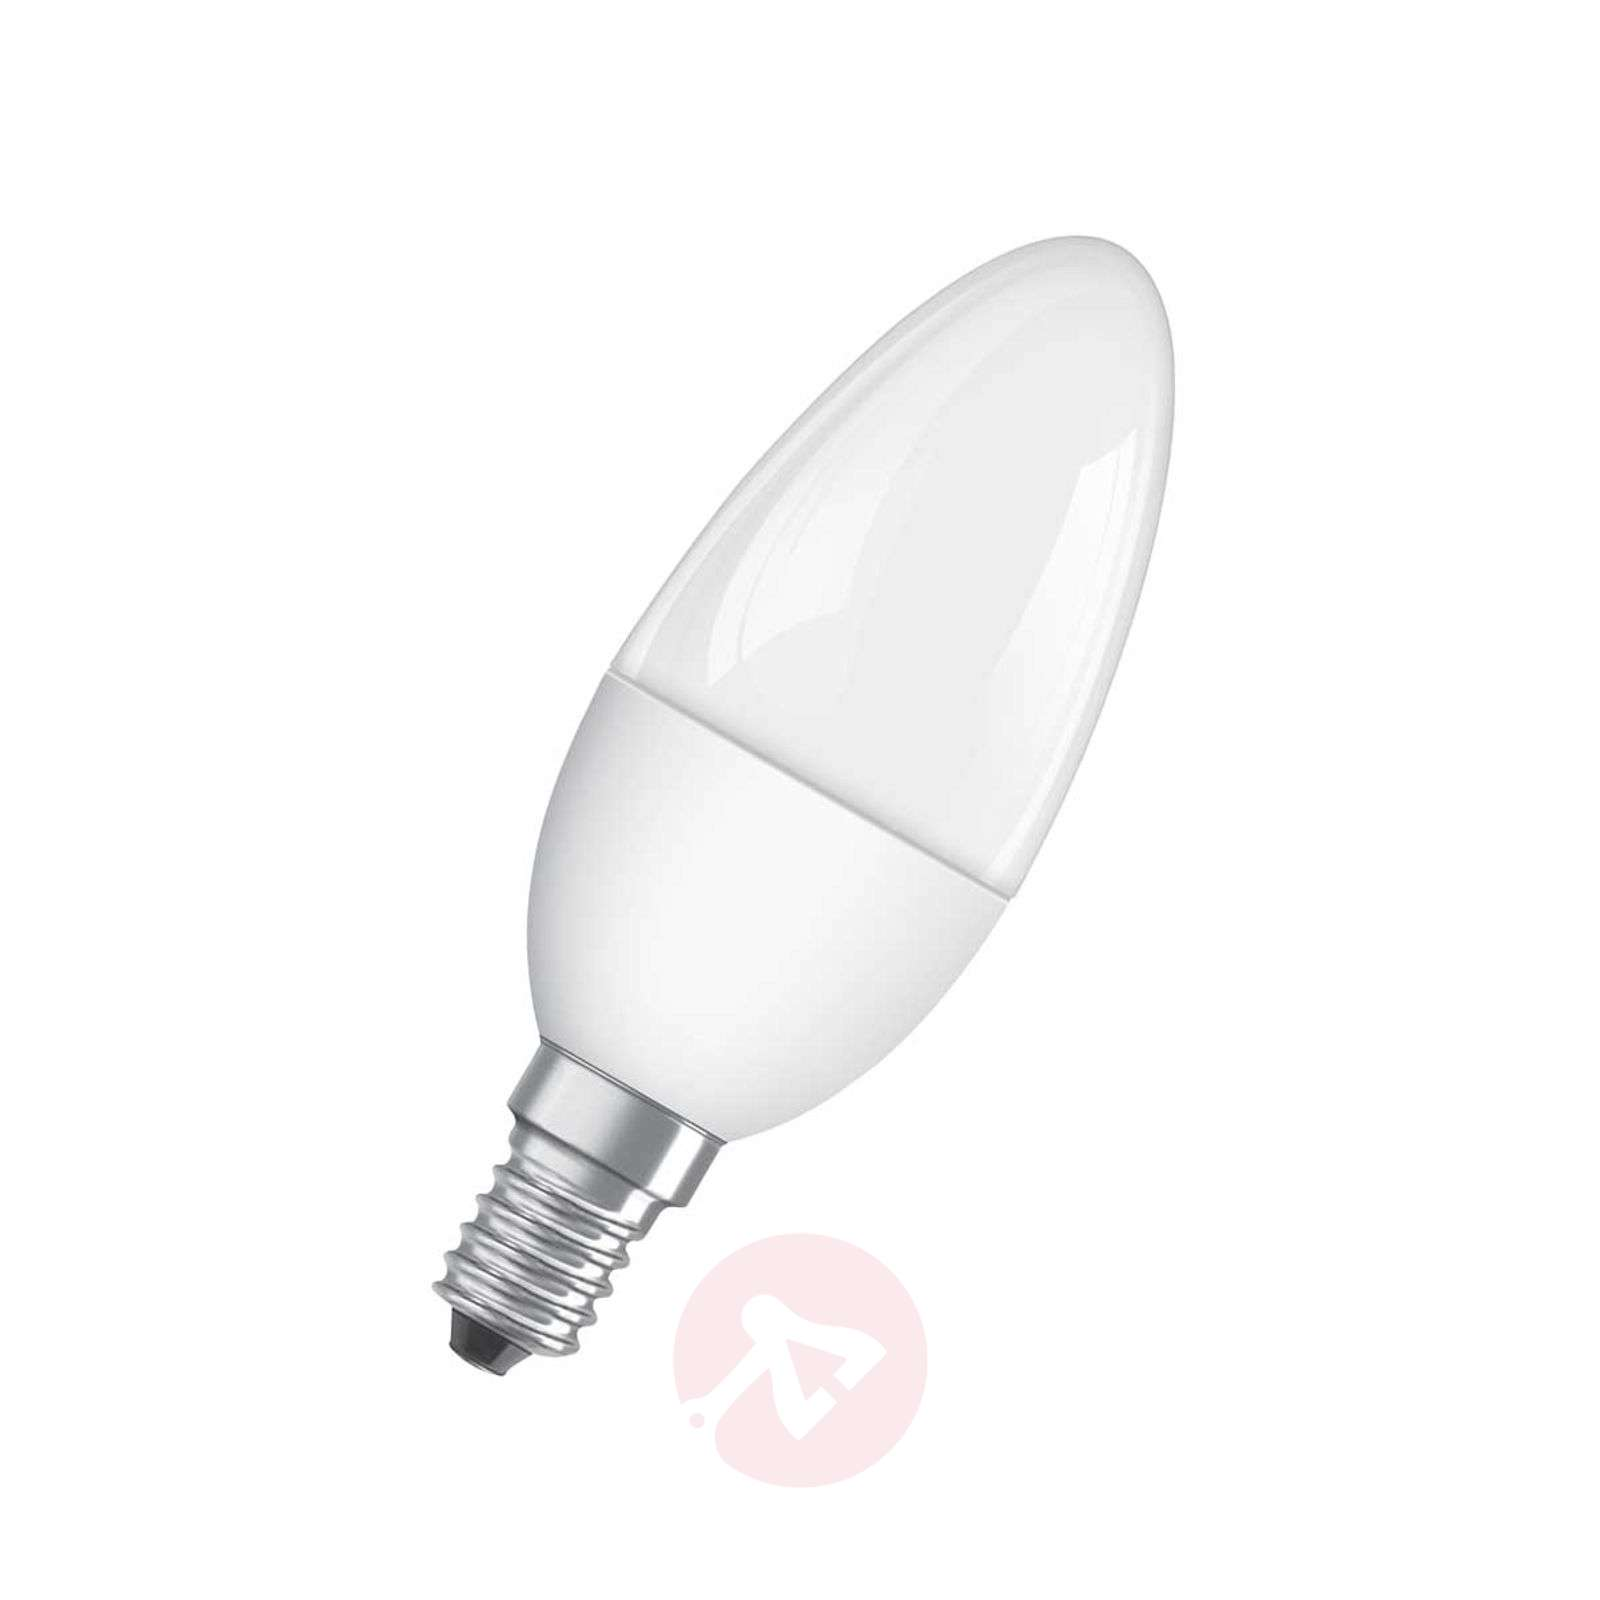 Ampoule LED bougie Superstar E14 5,5W 827 mate-7260672-01